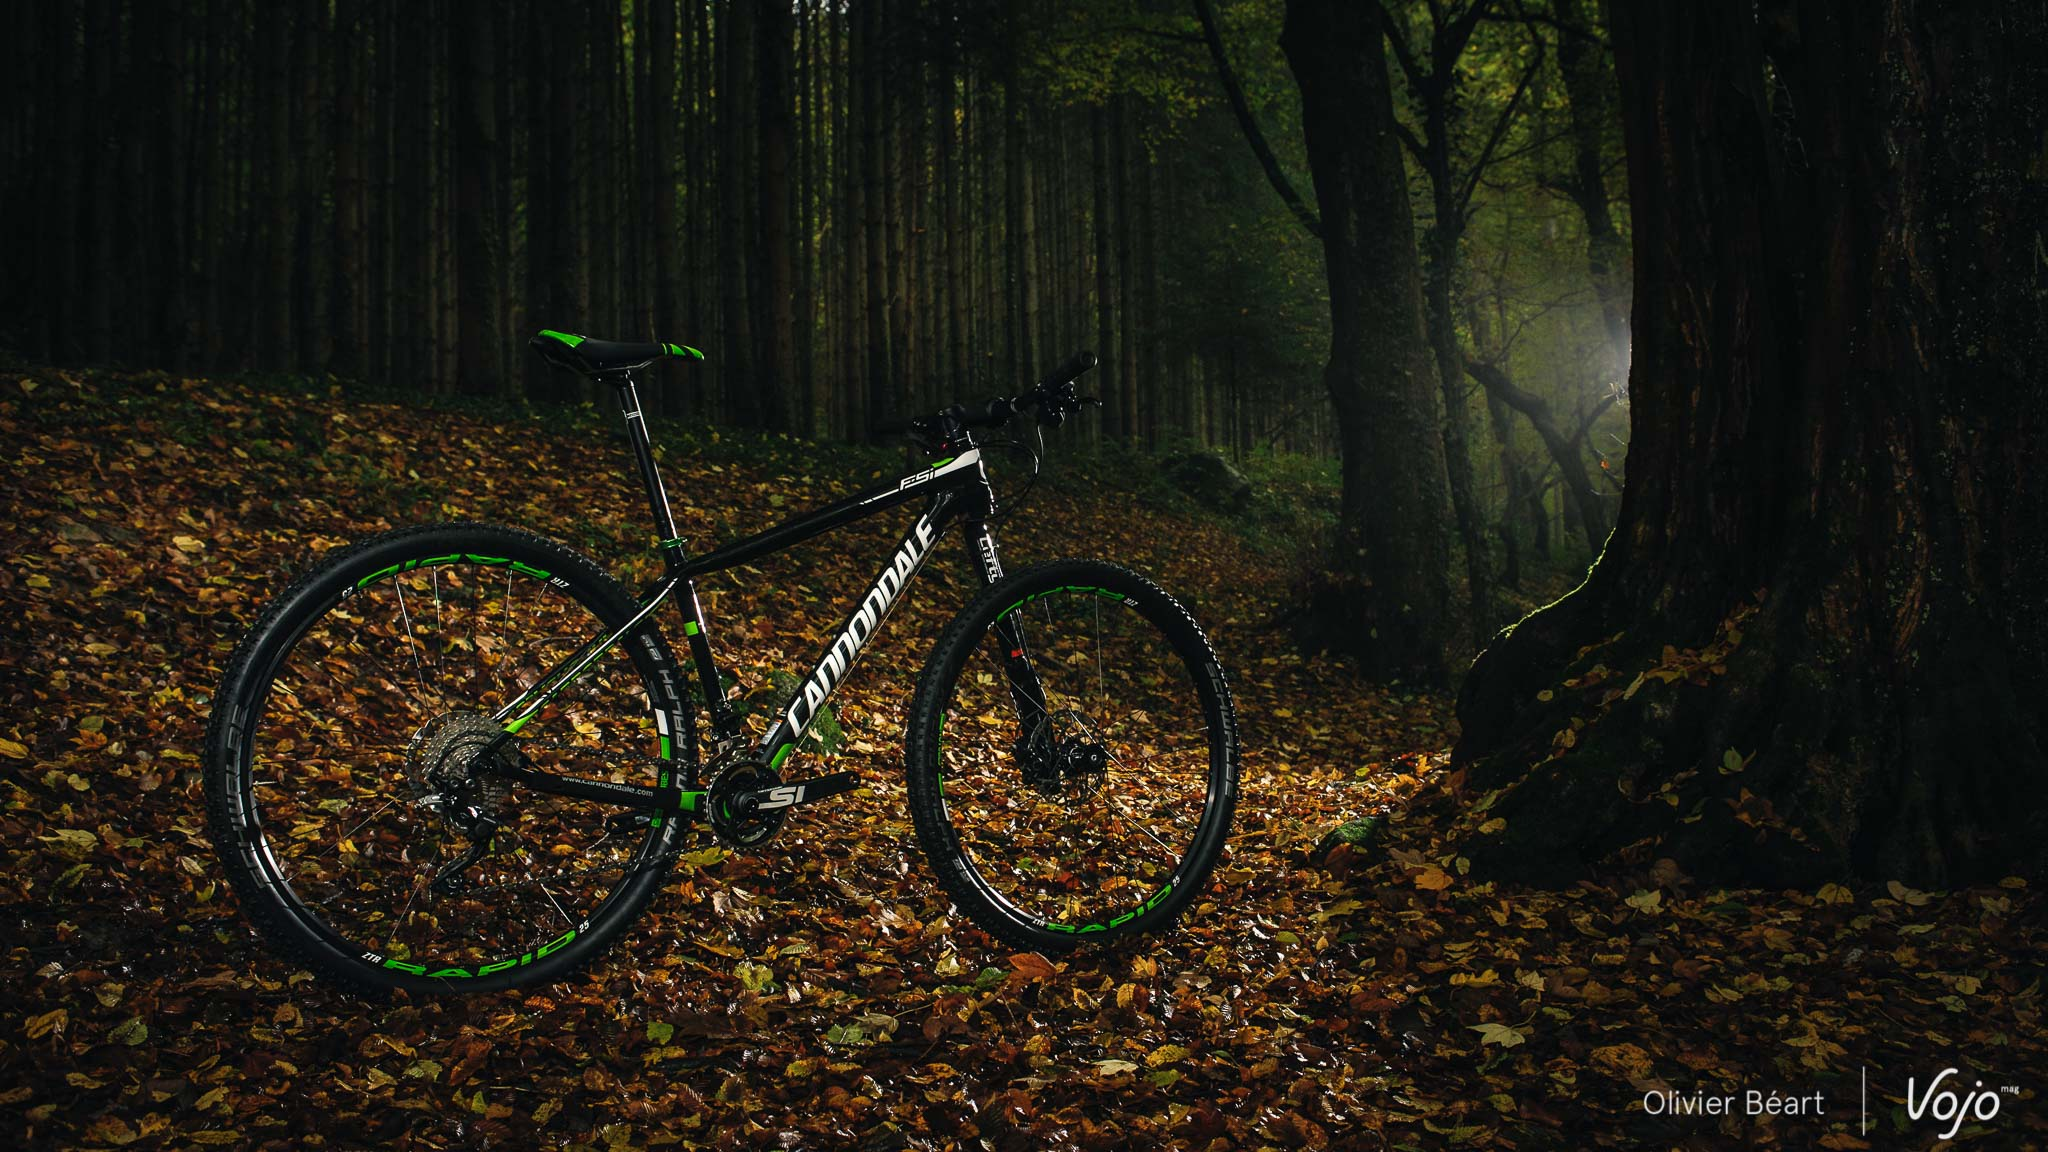 Cannondale_F-Si_Carbon_4_Test_Copyright_OBeart_VojoMag-3b